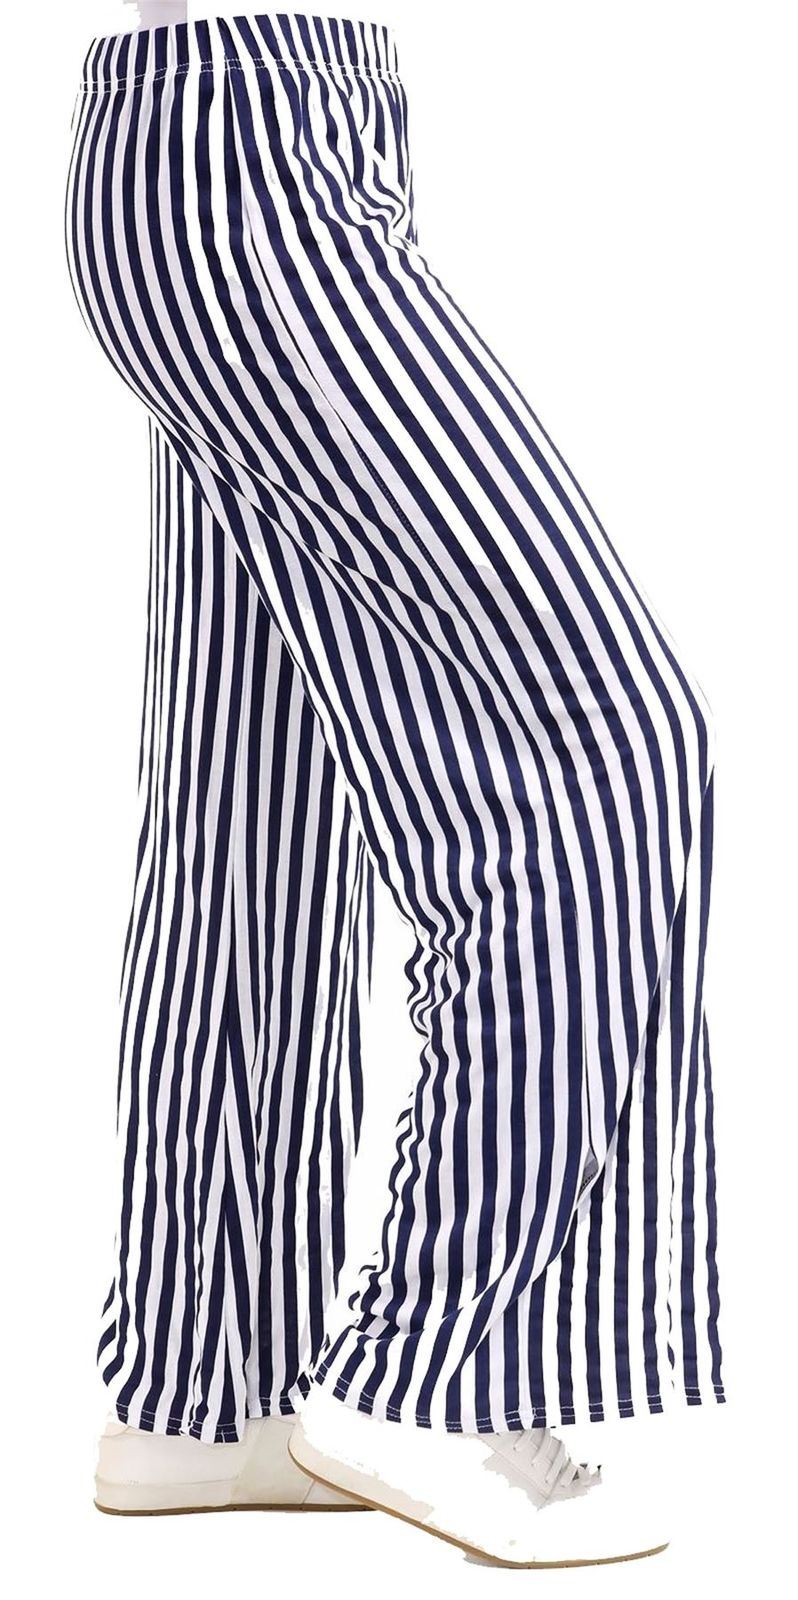 New-Ladies-Floral-Printed-Wide-Leg-Flared-Parallel-Baggy-Trousers-Pants-Palazzo thumbnail 49